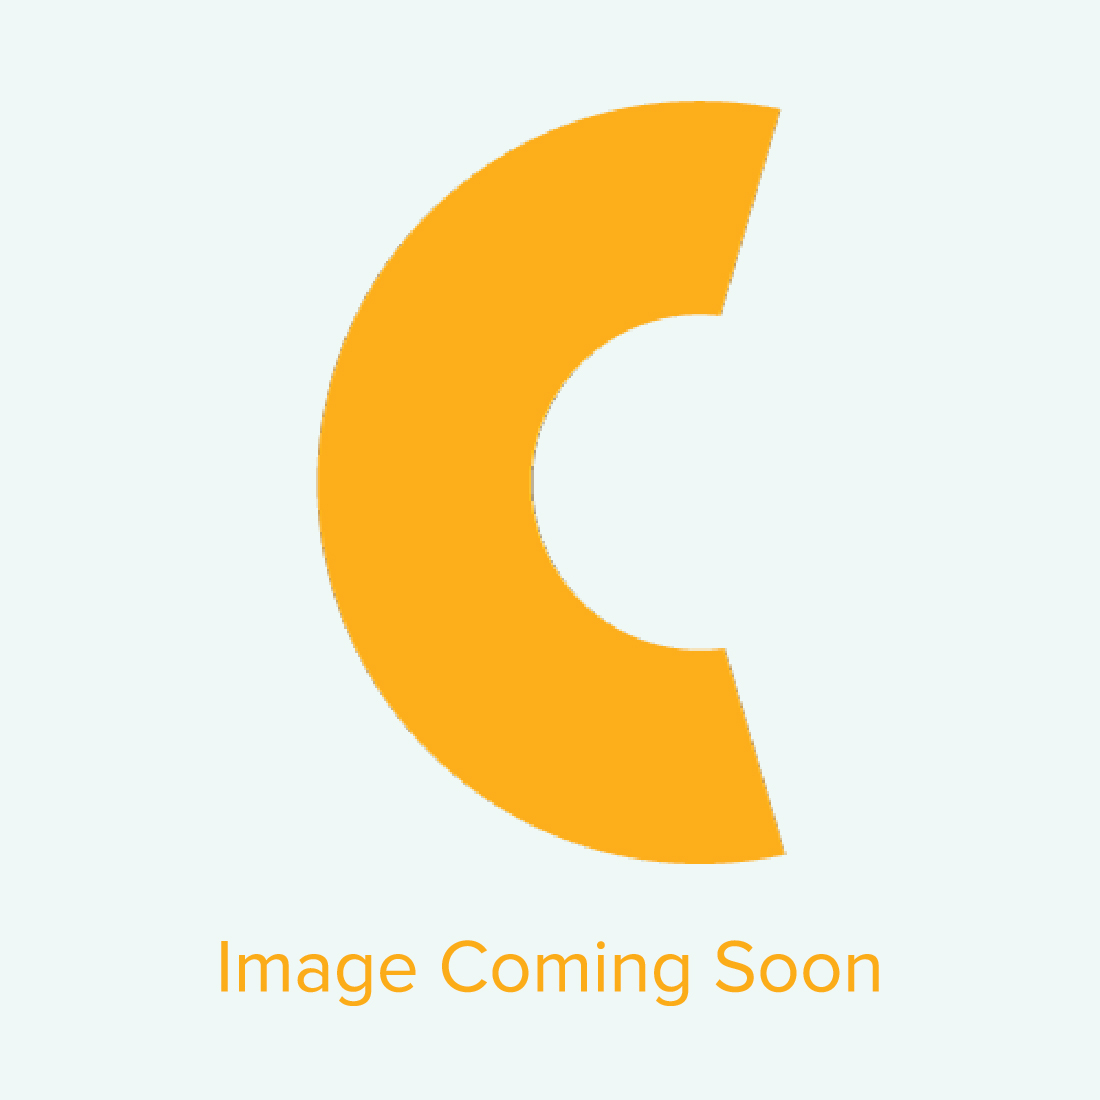 Black Ceramic Sublimation Coffee Mug with Printable White Area  11 oz.